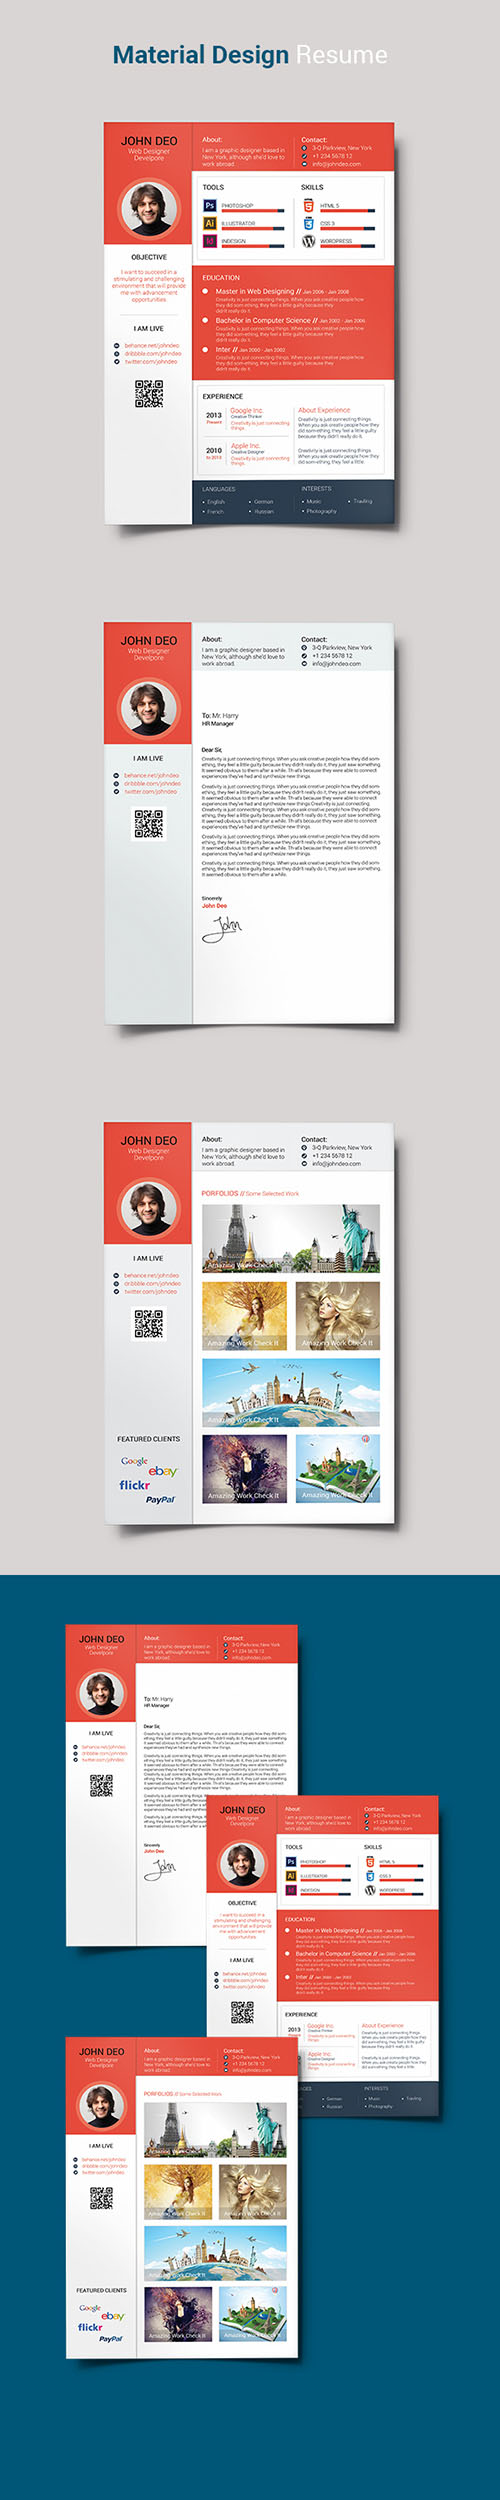 PSD Material Design Resume - Red & White Color Style